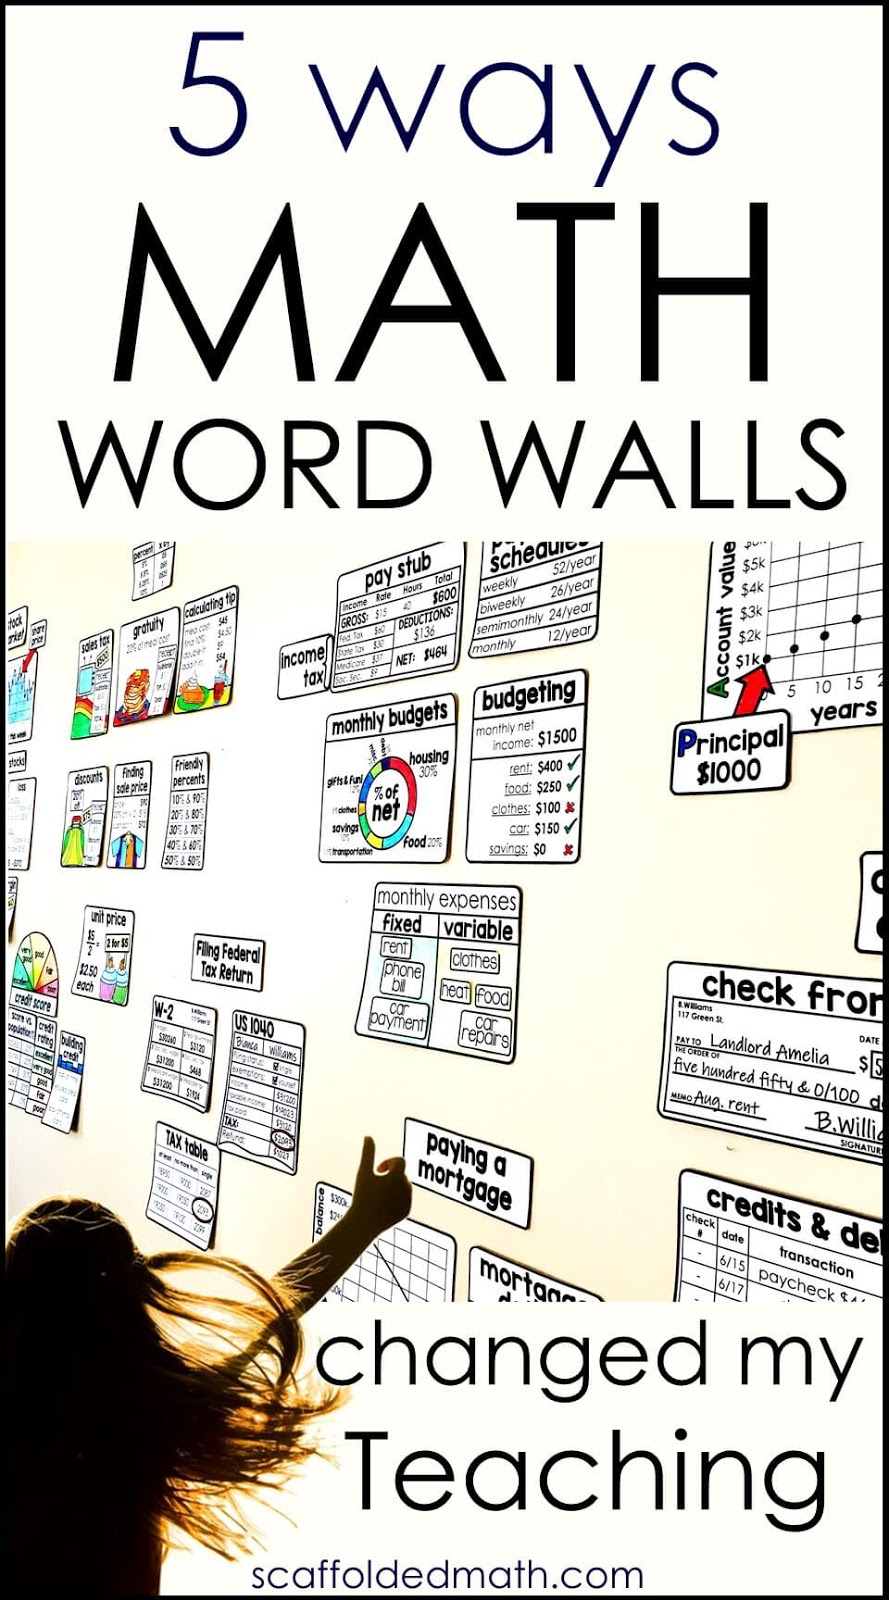 Scaffolded Math and Science: 5 Ways Math Word Walls Have